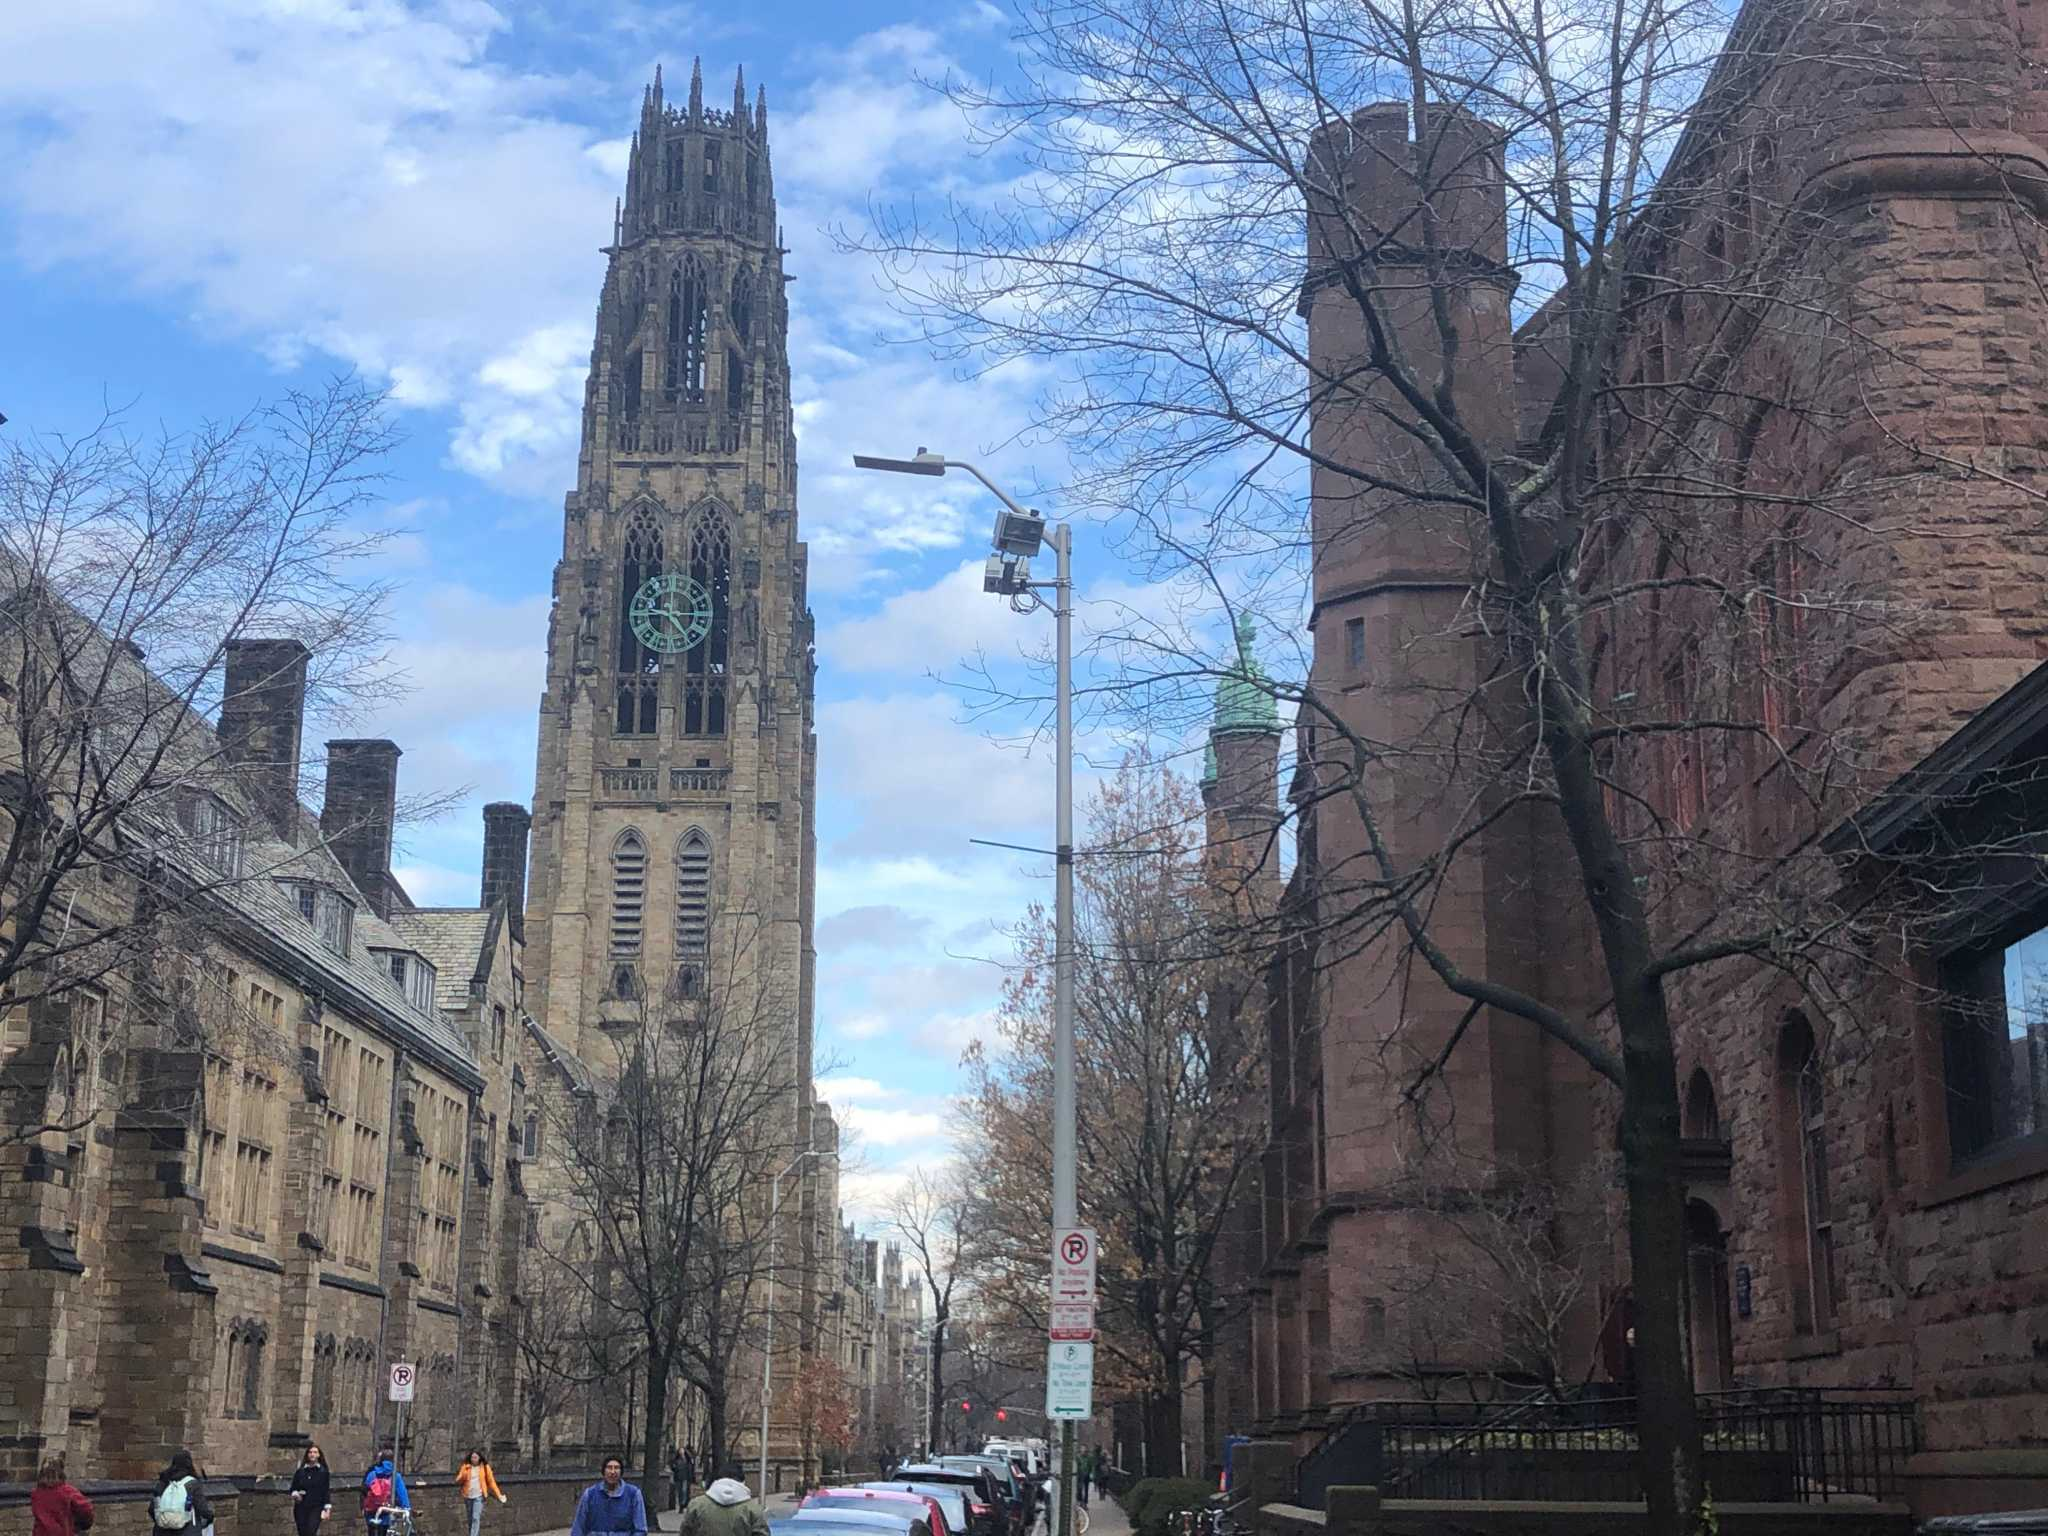 Report: Yale graduate, now homeless, shares story as Trump considers issue